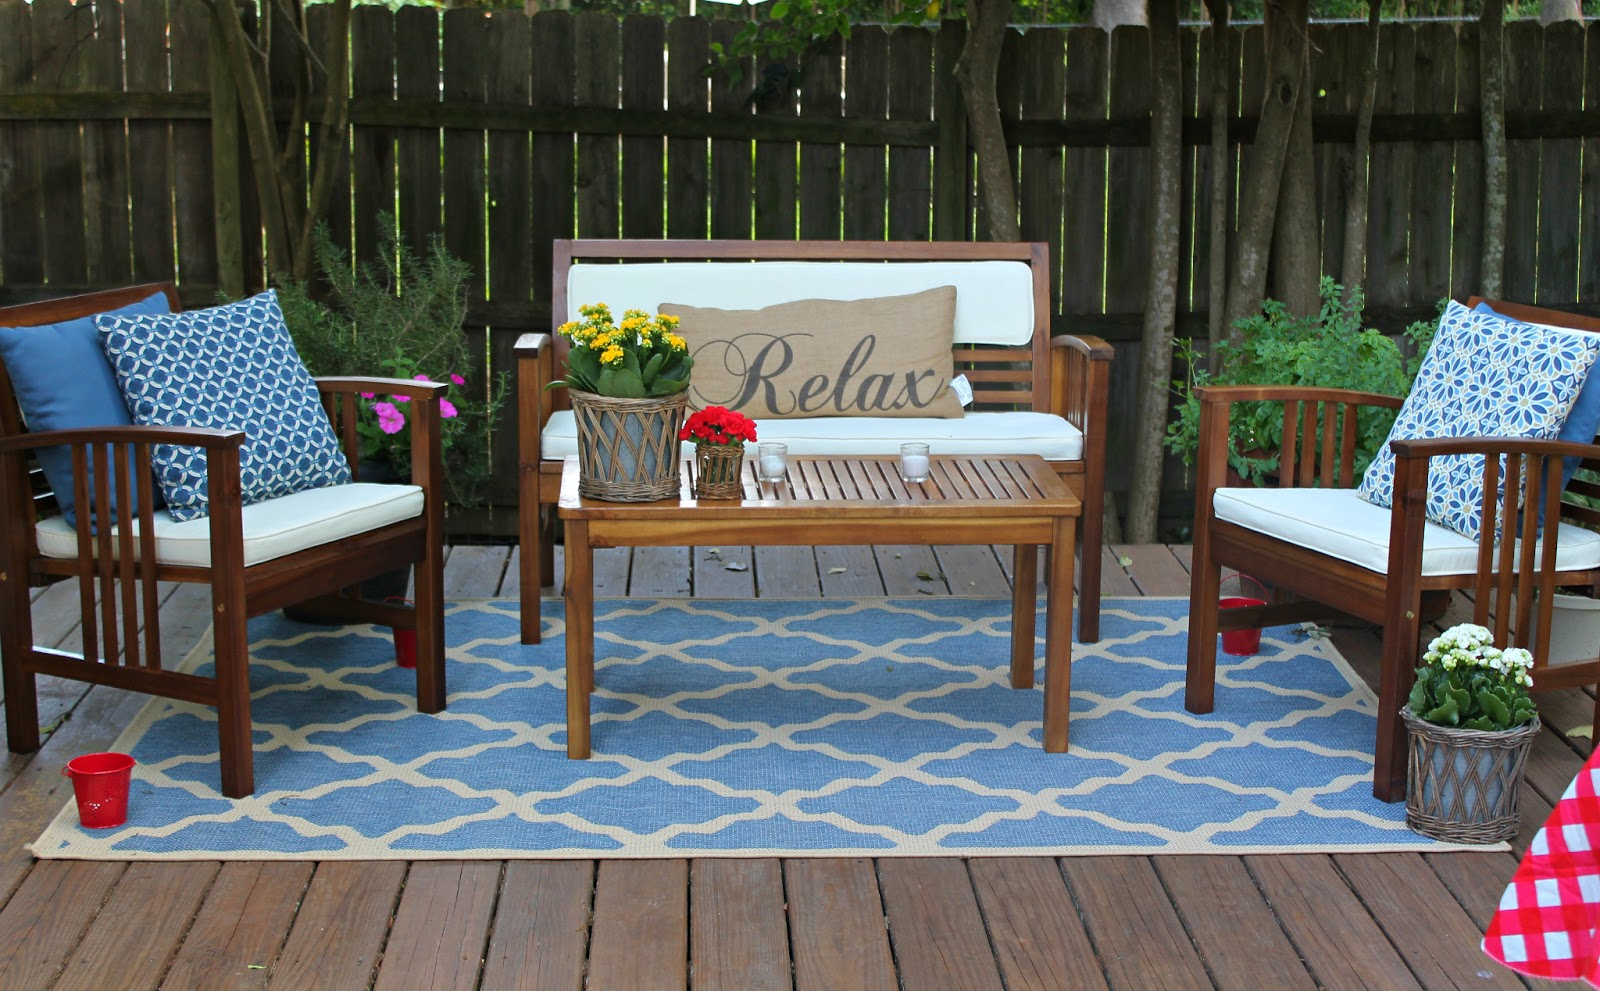 Outdoor Rugs For Decks And Patio With World Market Comfy Seating Decorative